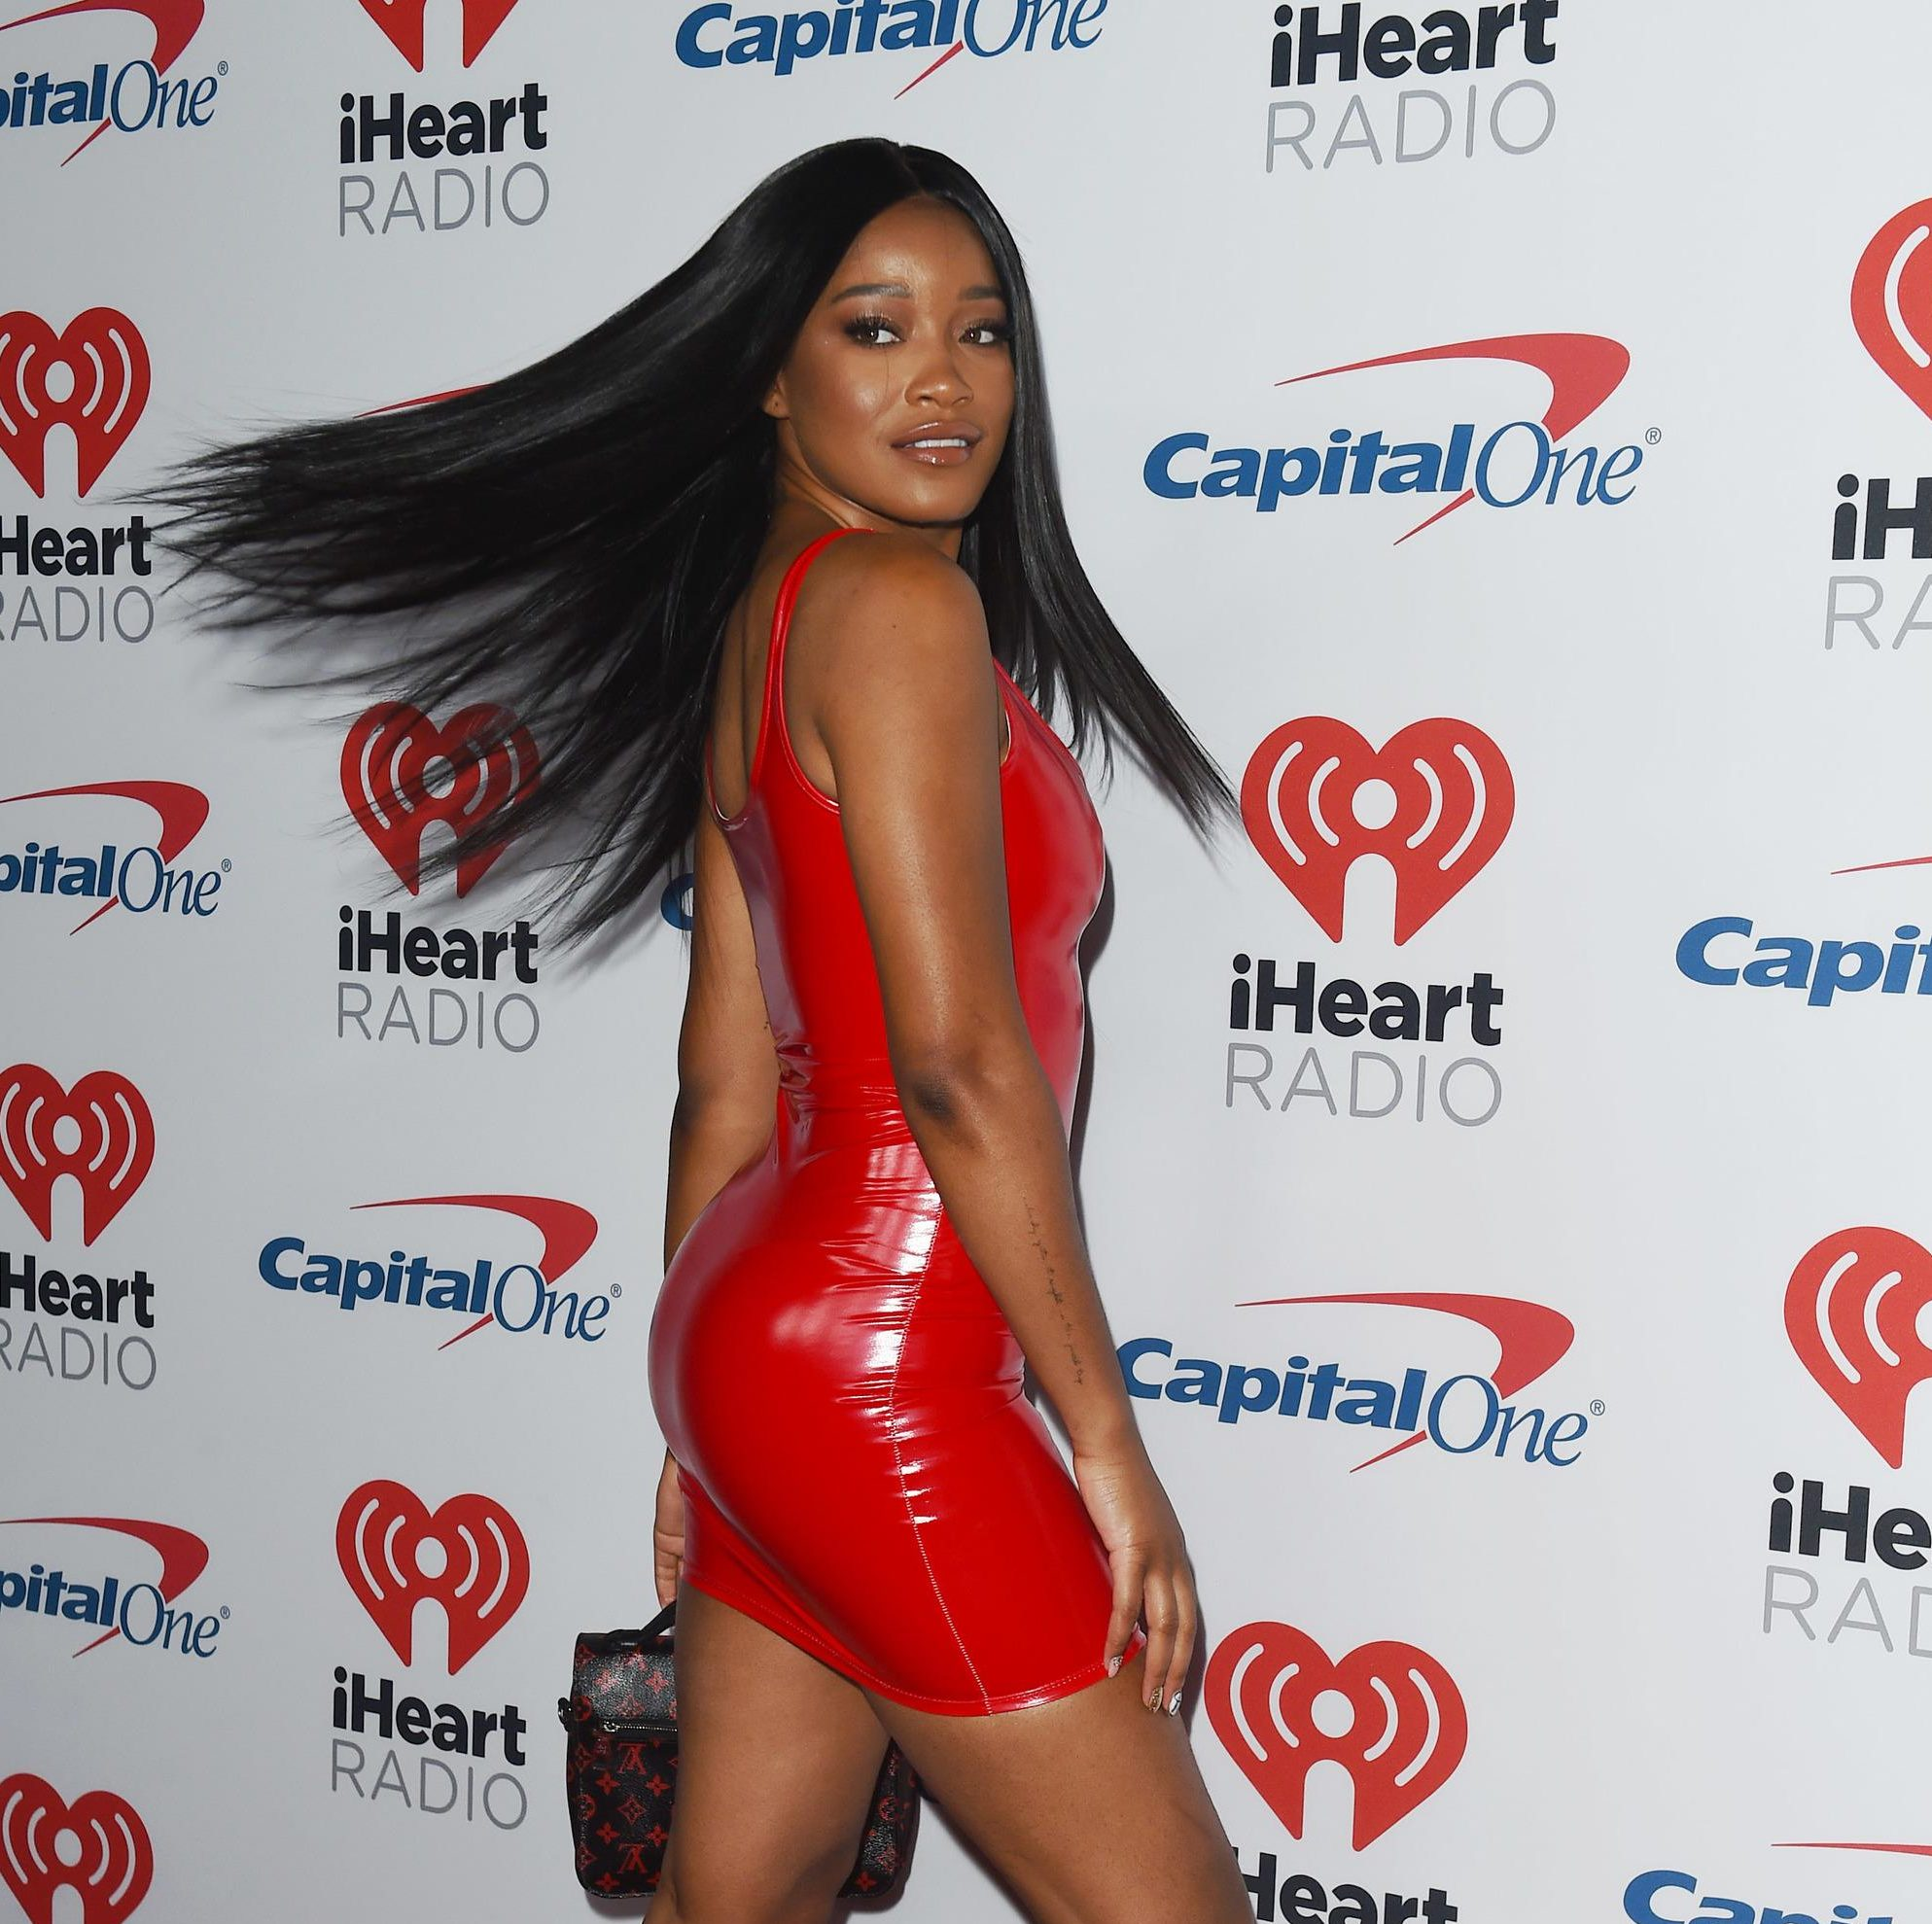 Keke Palmer swishing her long black straight hair